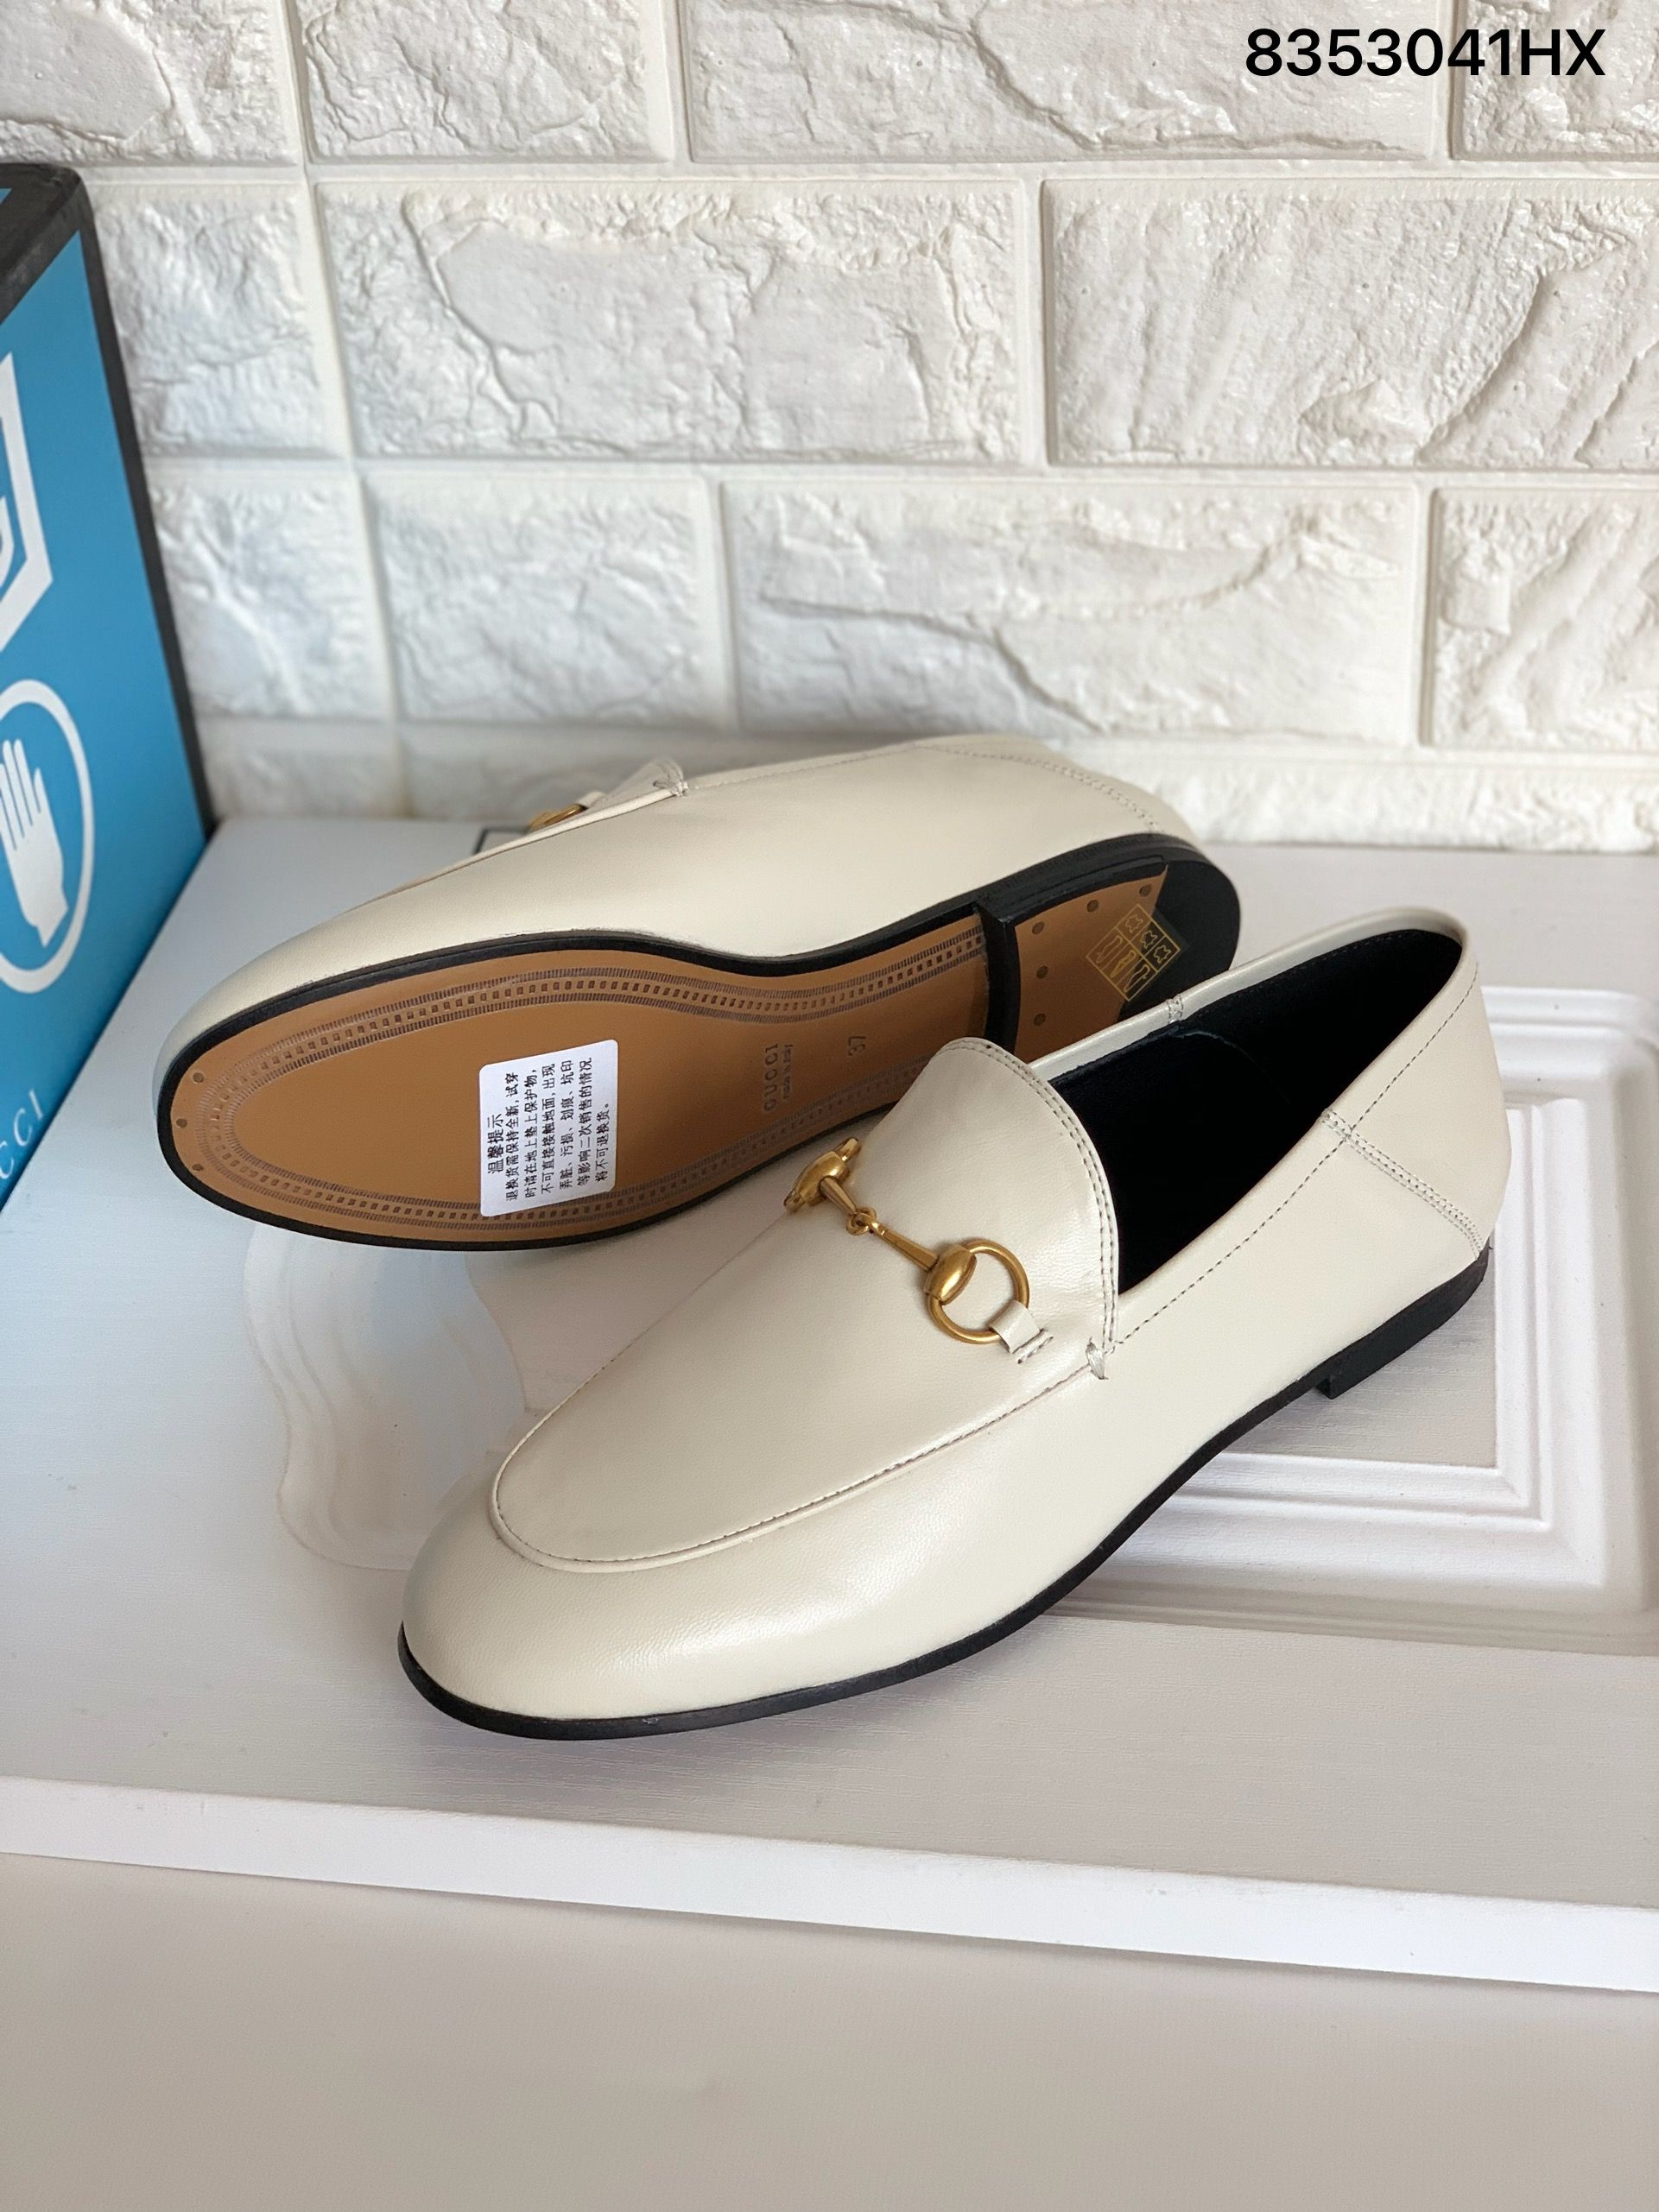 Gucci Jordaan leather loafers step on